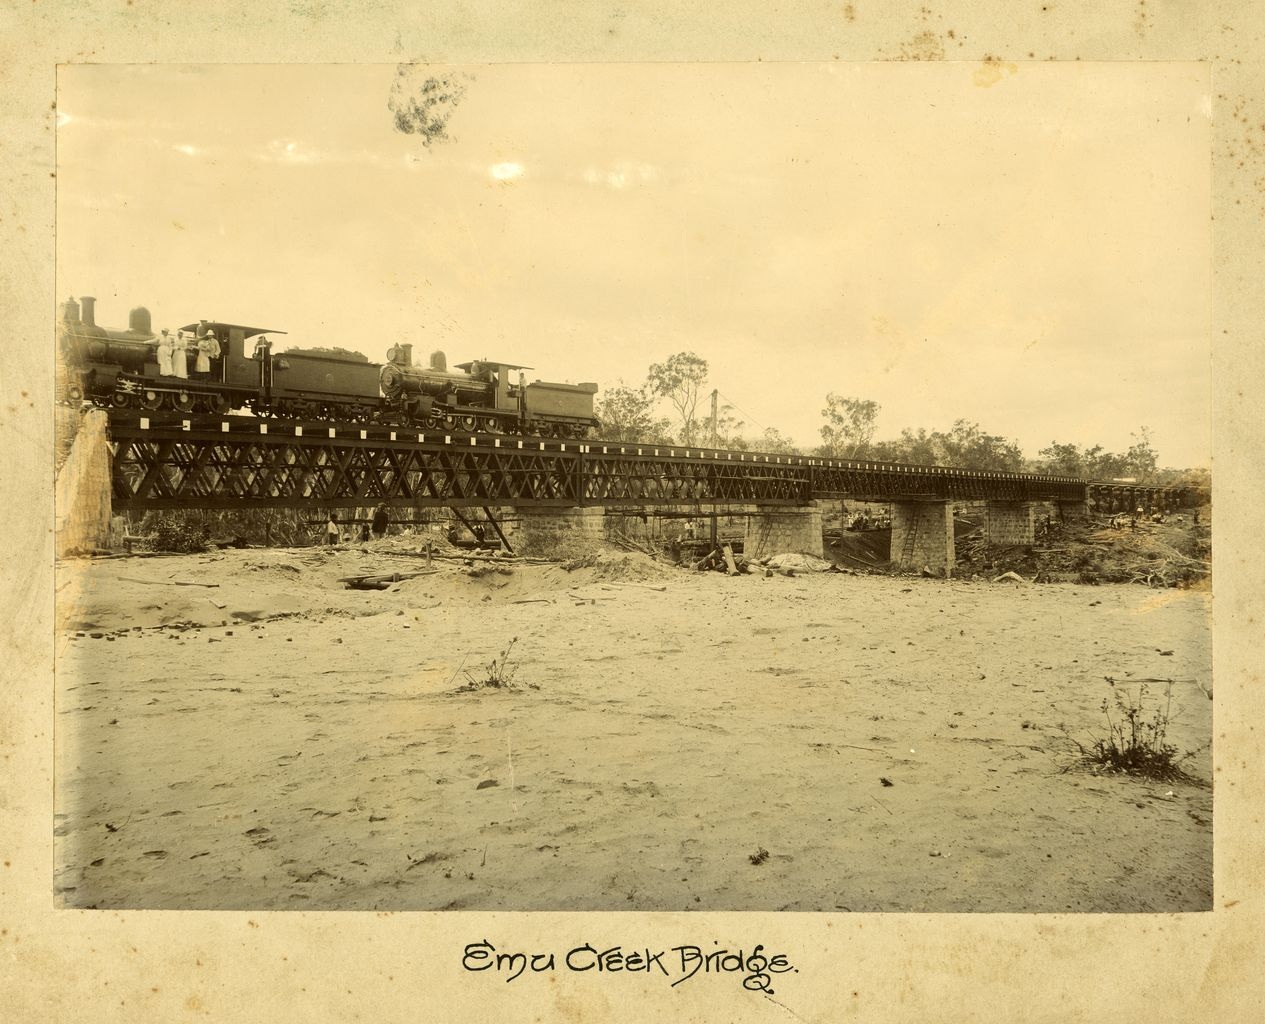 Image of Emu Creek Bridge, locomotive stopped far left of railway bridge. Three women and a man can be seen at the front of the locomotive.